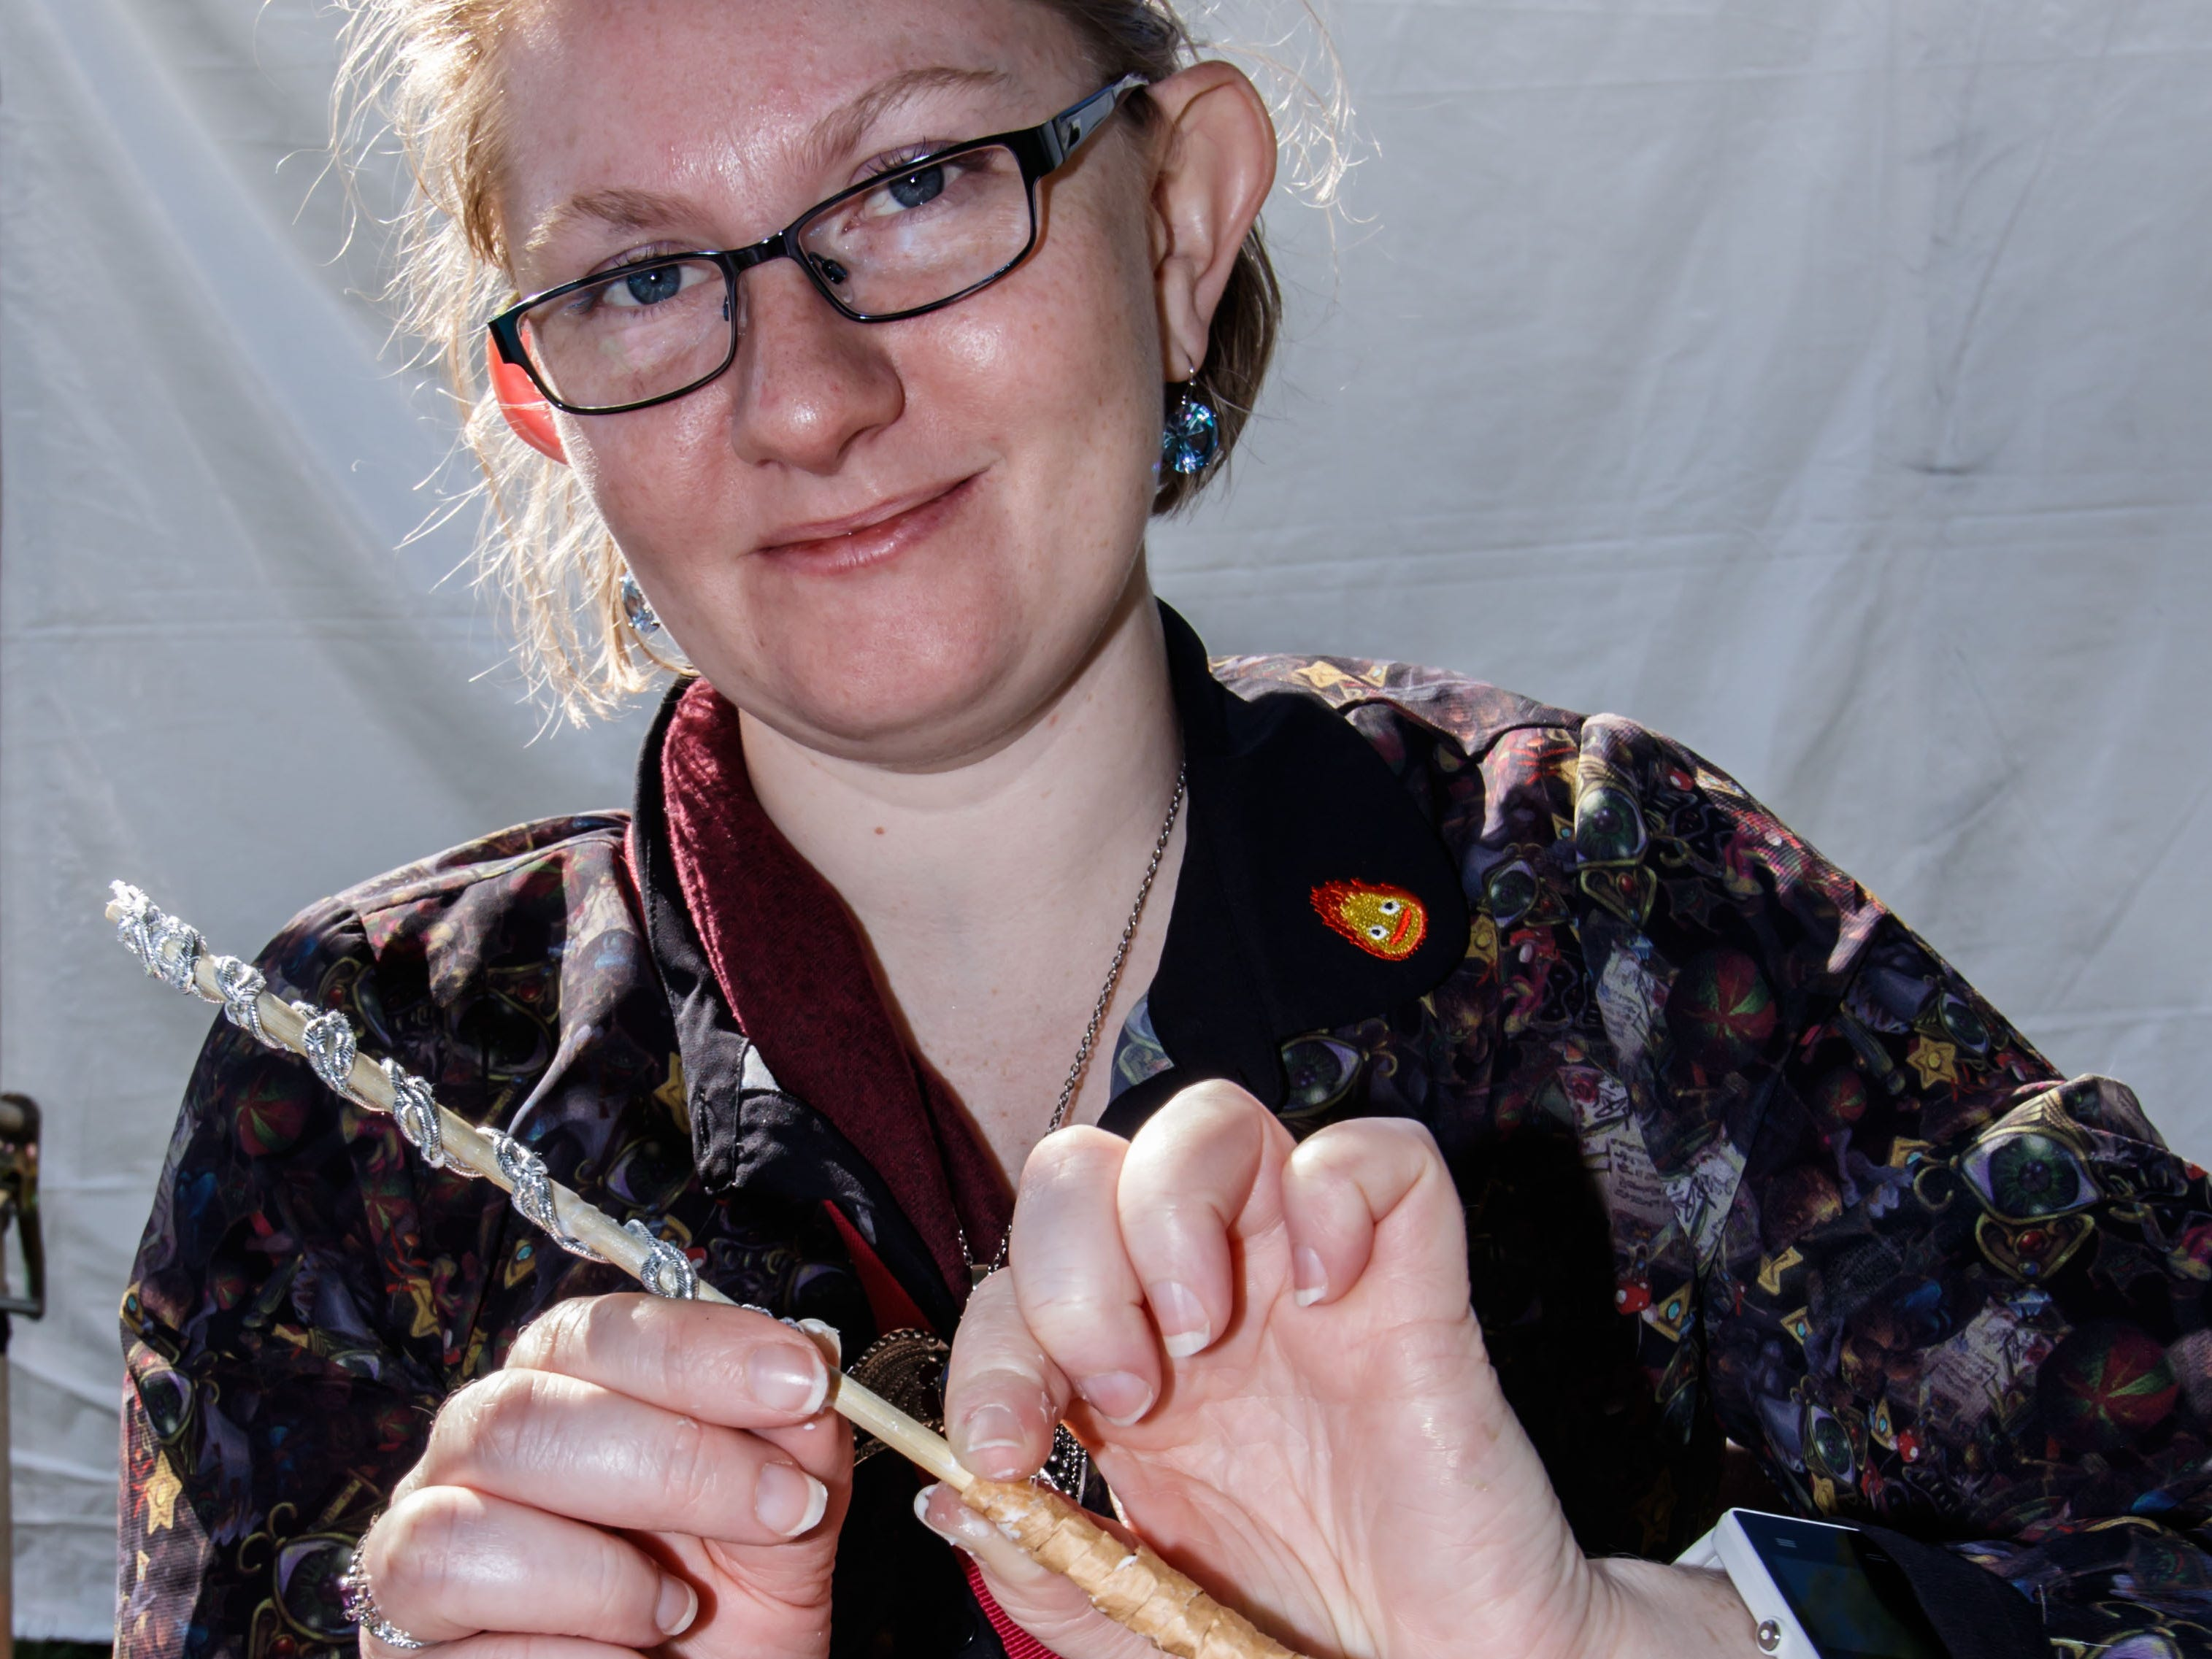 Mara Wilcox of Milwaukee builds her own magic wand during the Midwest Magic Fest at the Waukesha Expo Center on Sunday, Sept. 23, 2018. The family friendly event featured one-of-a-kind entertainment, mythical creatures, games, crafts, vendors, unique photo-ops, costume contests and much more.